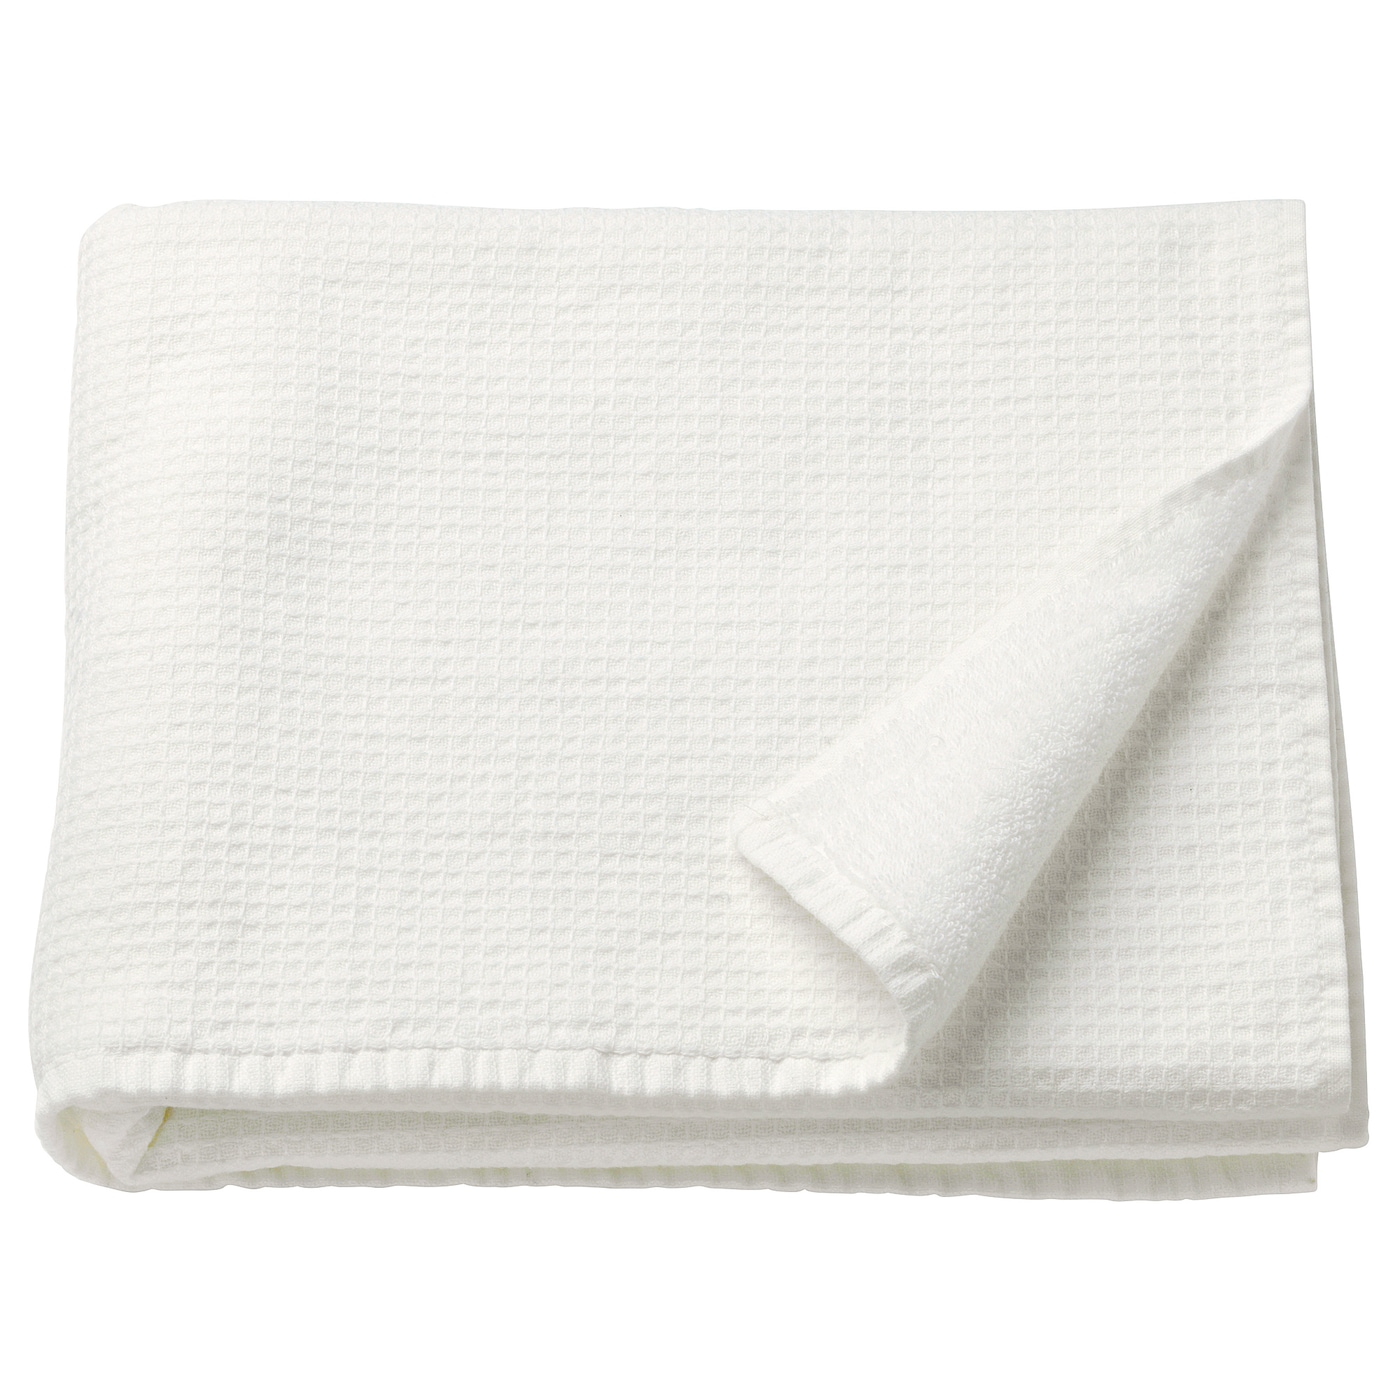 IKEA SALVIKEN bath towel A soft cotton towel with good absorption capacity.